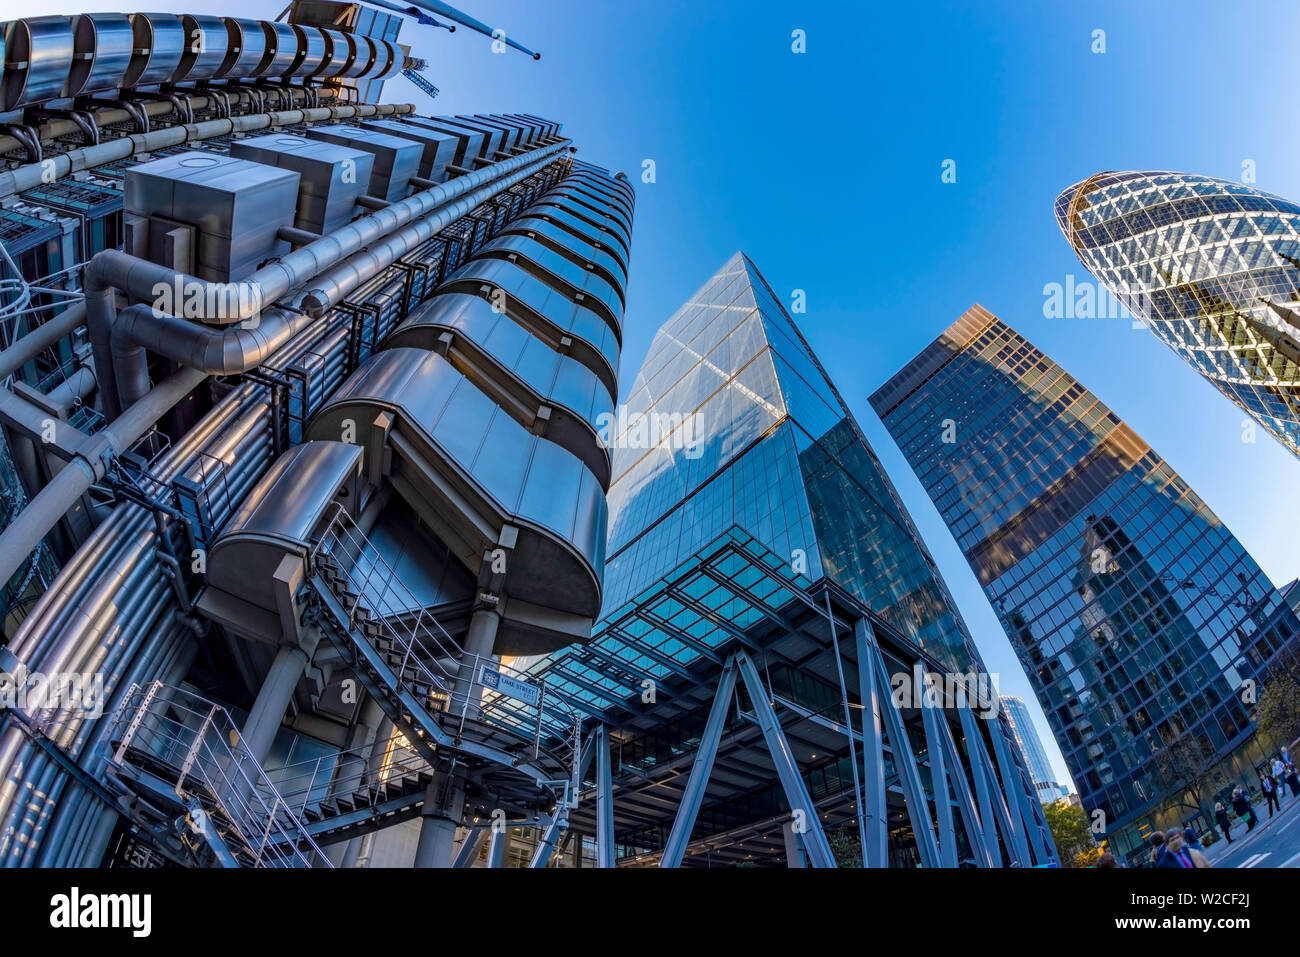 UK, England, London, The City, including The Gherkin (30 St. Mary Axe), Lloyd's Building and The Cheesegrater (122 Leadenhall Street) - Stock Image